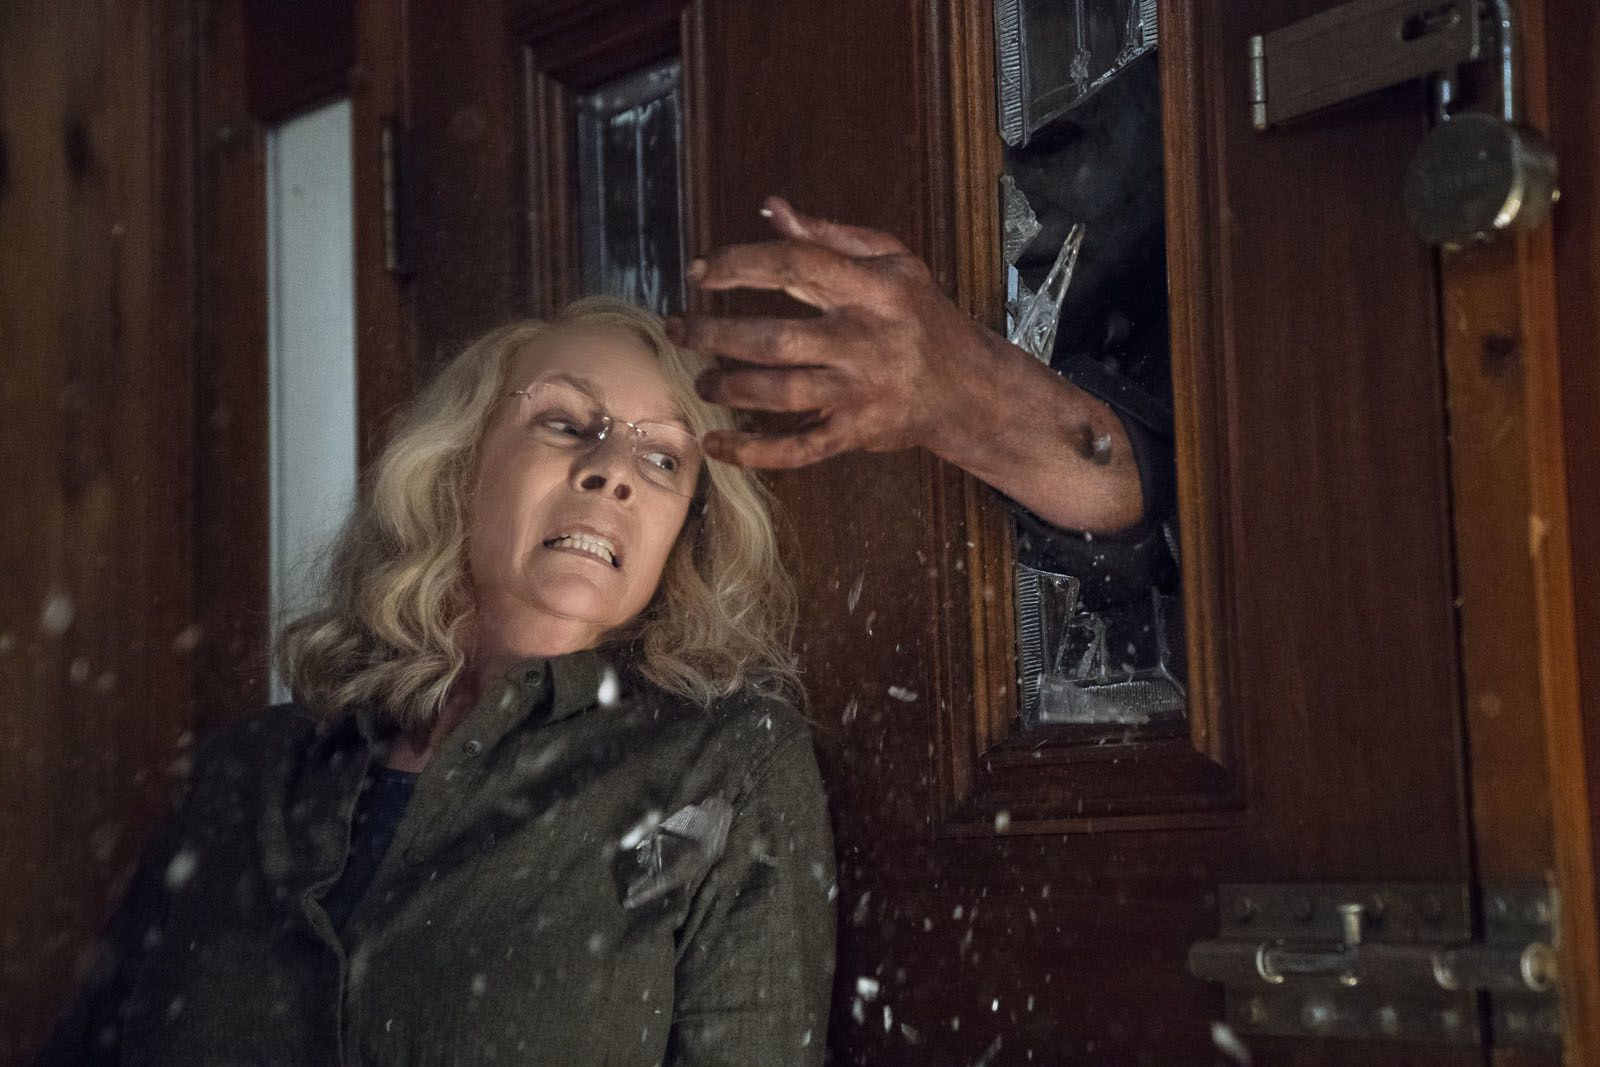 Halloween (BANDE-ANNONCE) avec Jamie Lee Curtis, Judy Greer, Will Patton - Le 24 octobre 2018 au cinéma